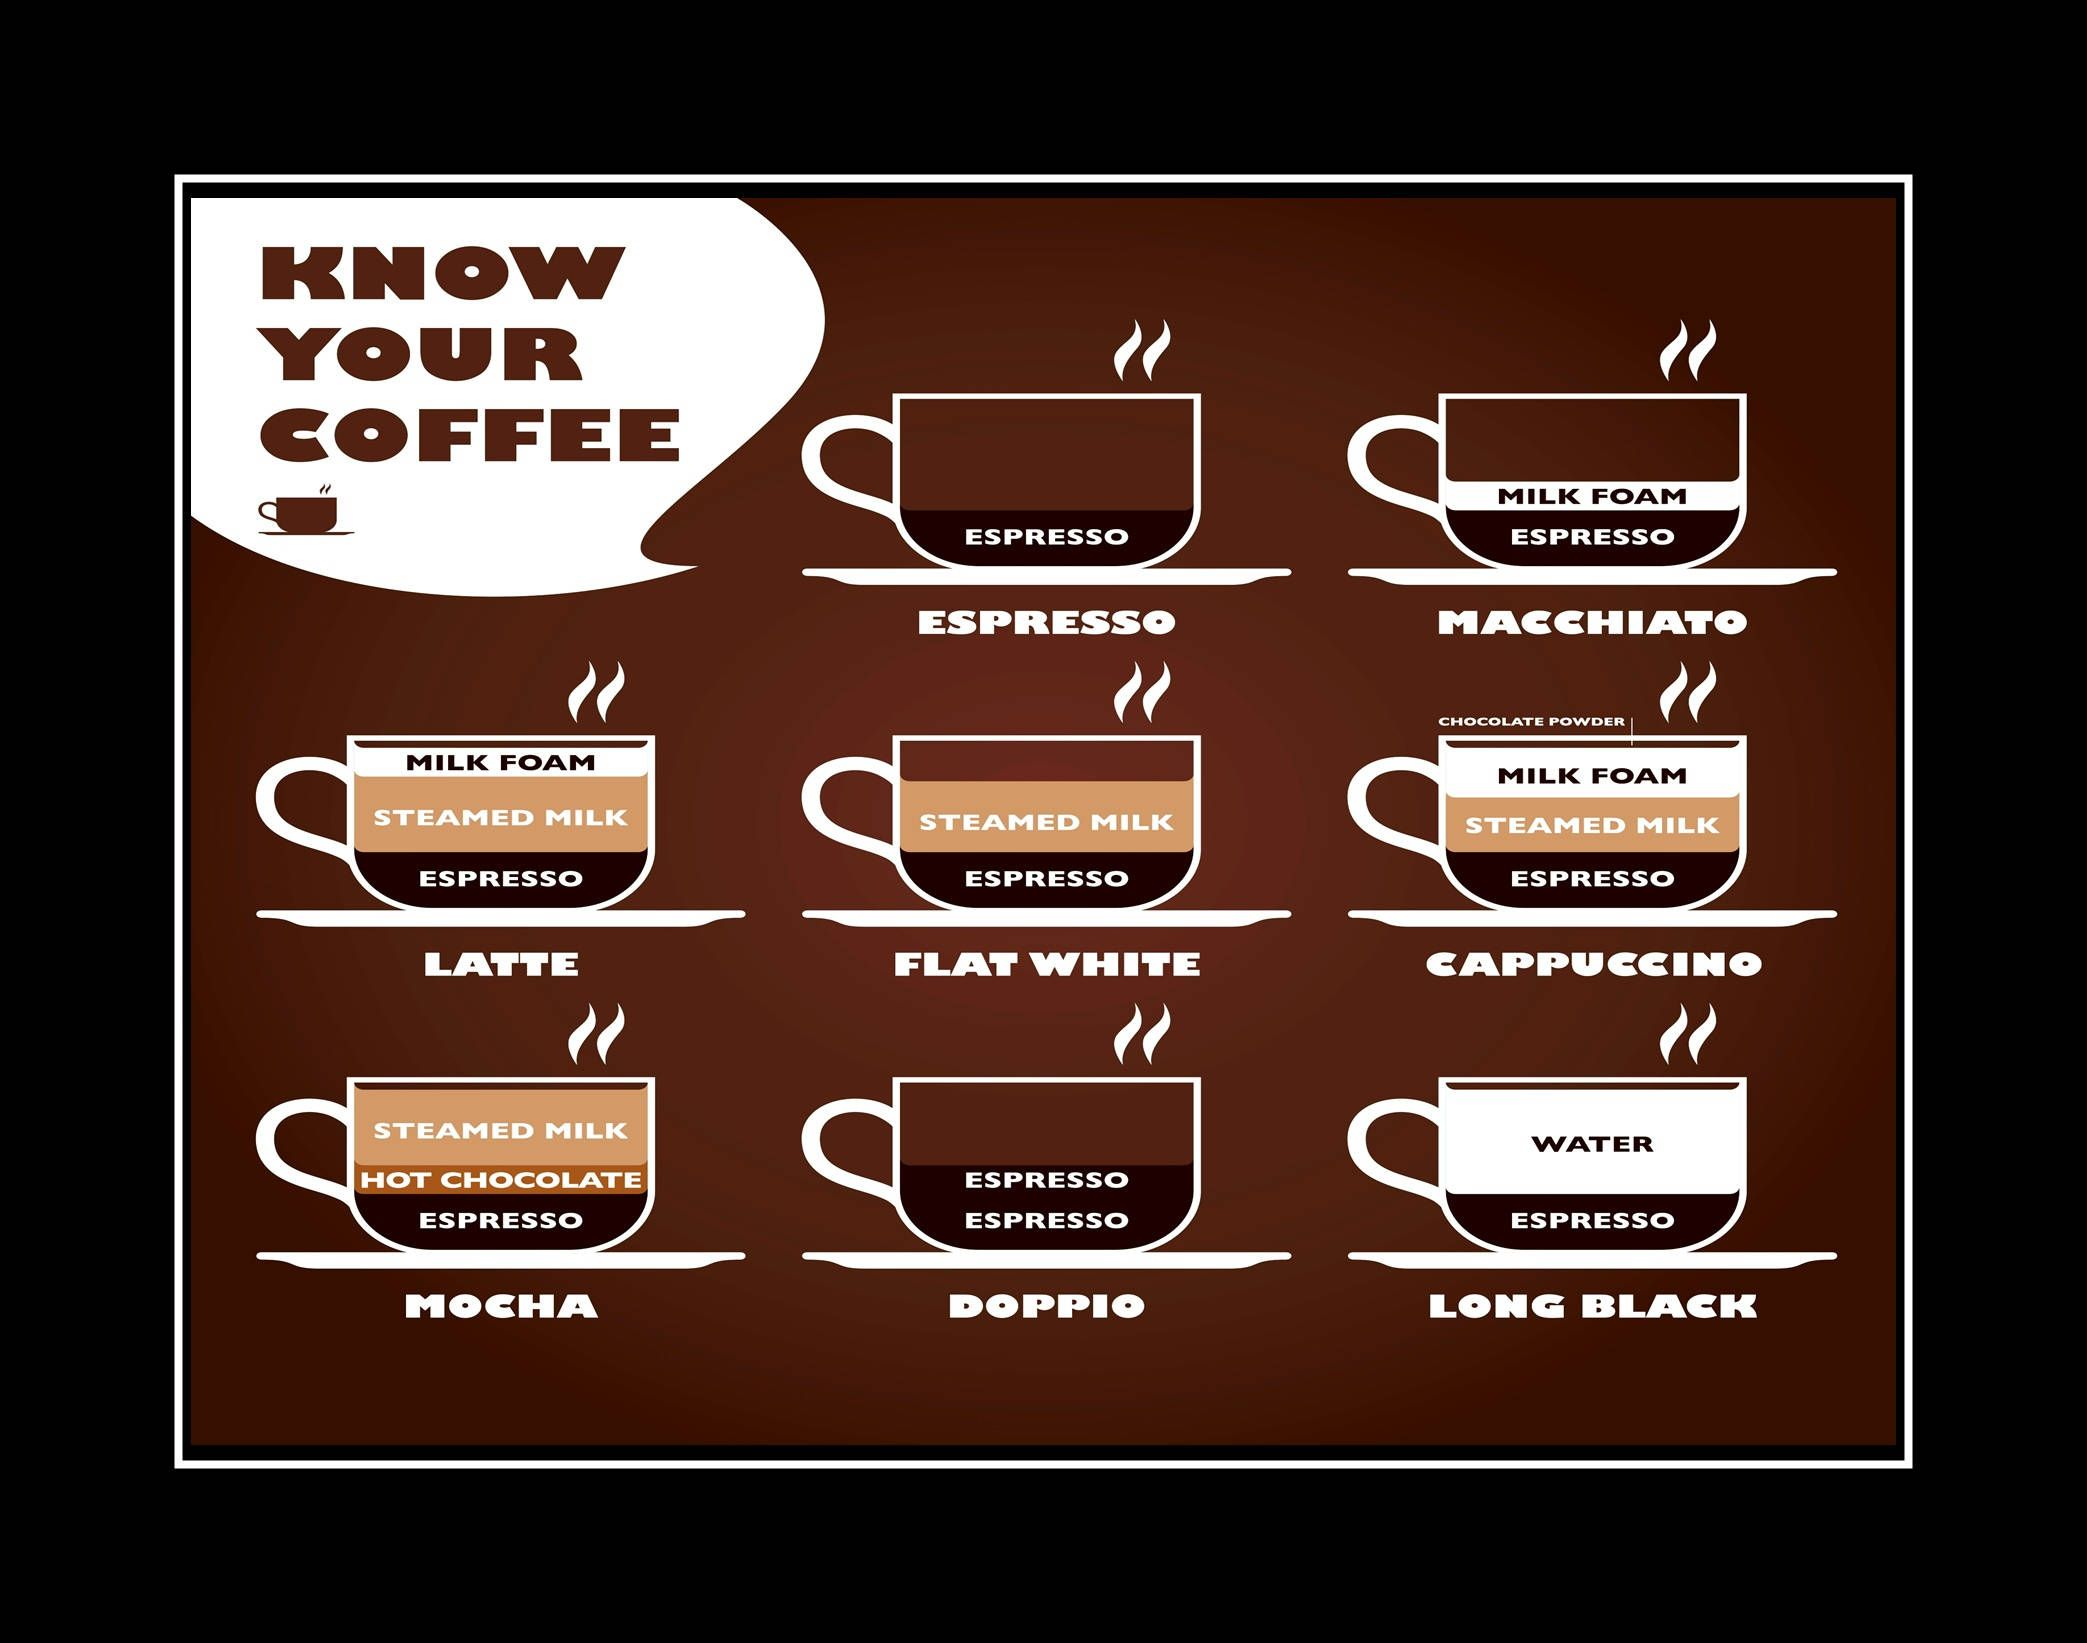 Know Your Coffee Chart, Kitchen Wall Decor, Cafe Wall Art Gift, Espresso,